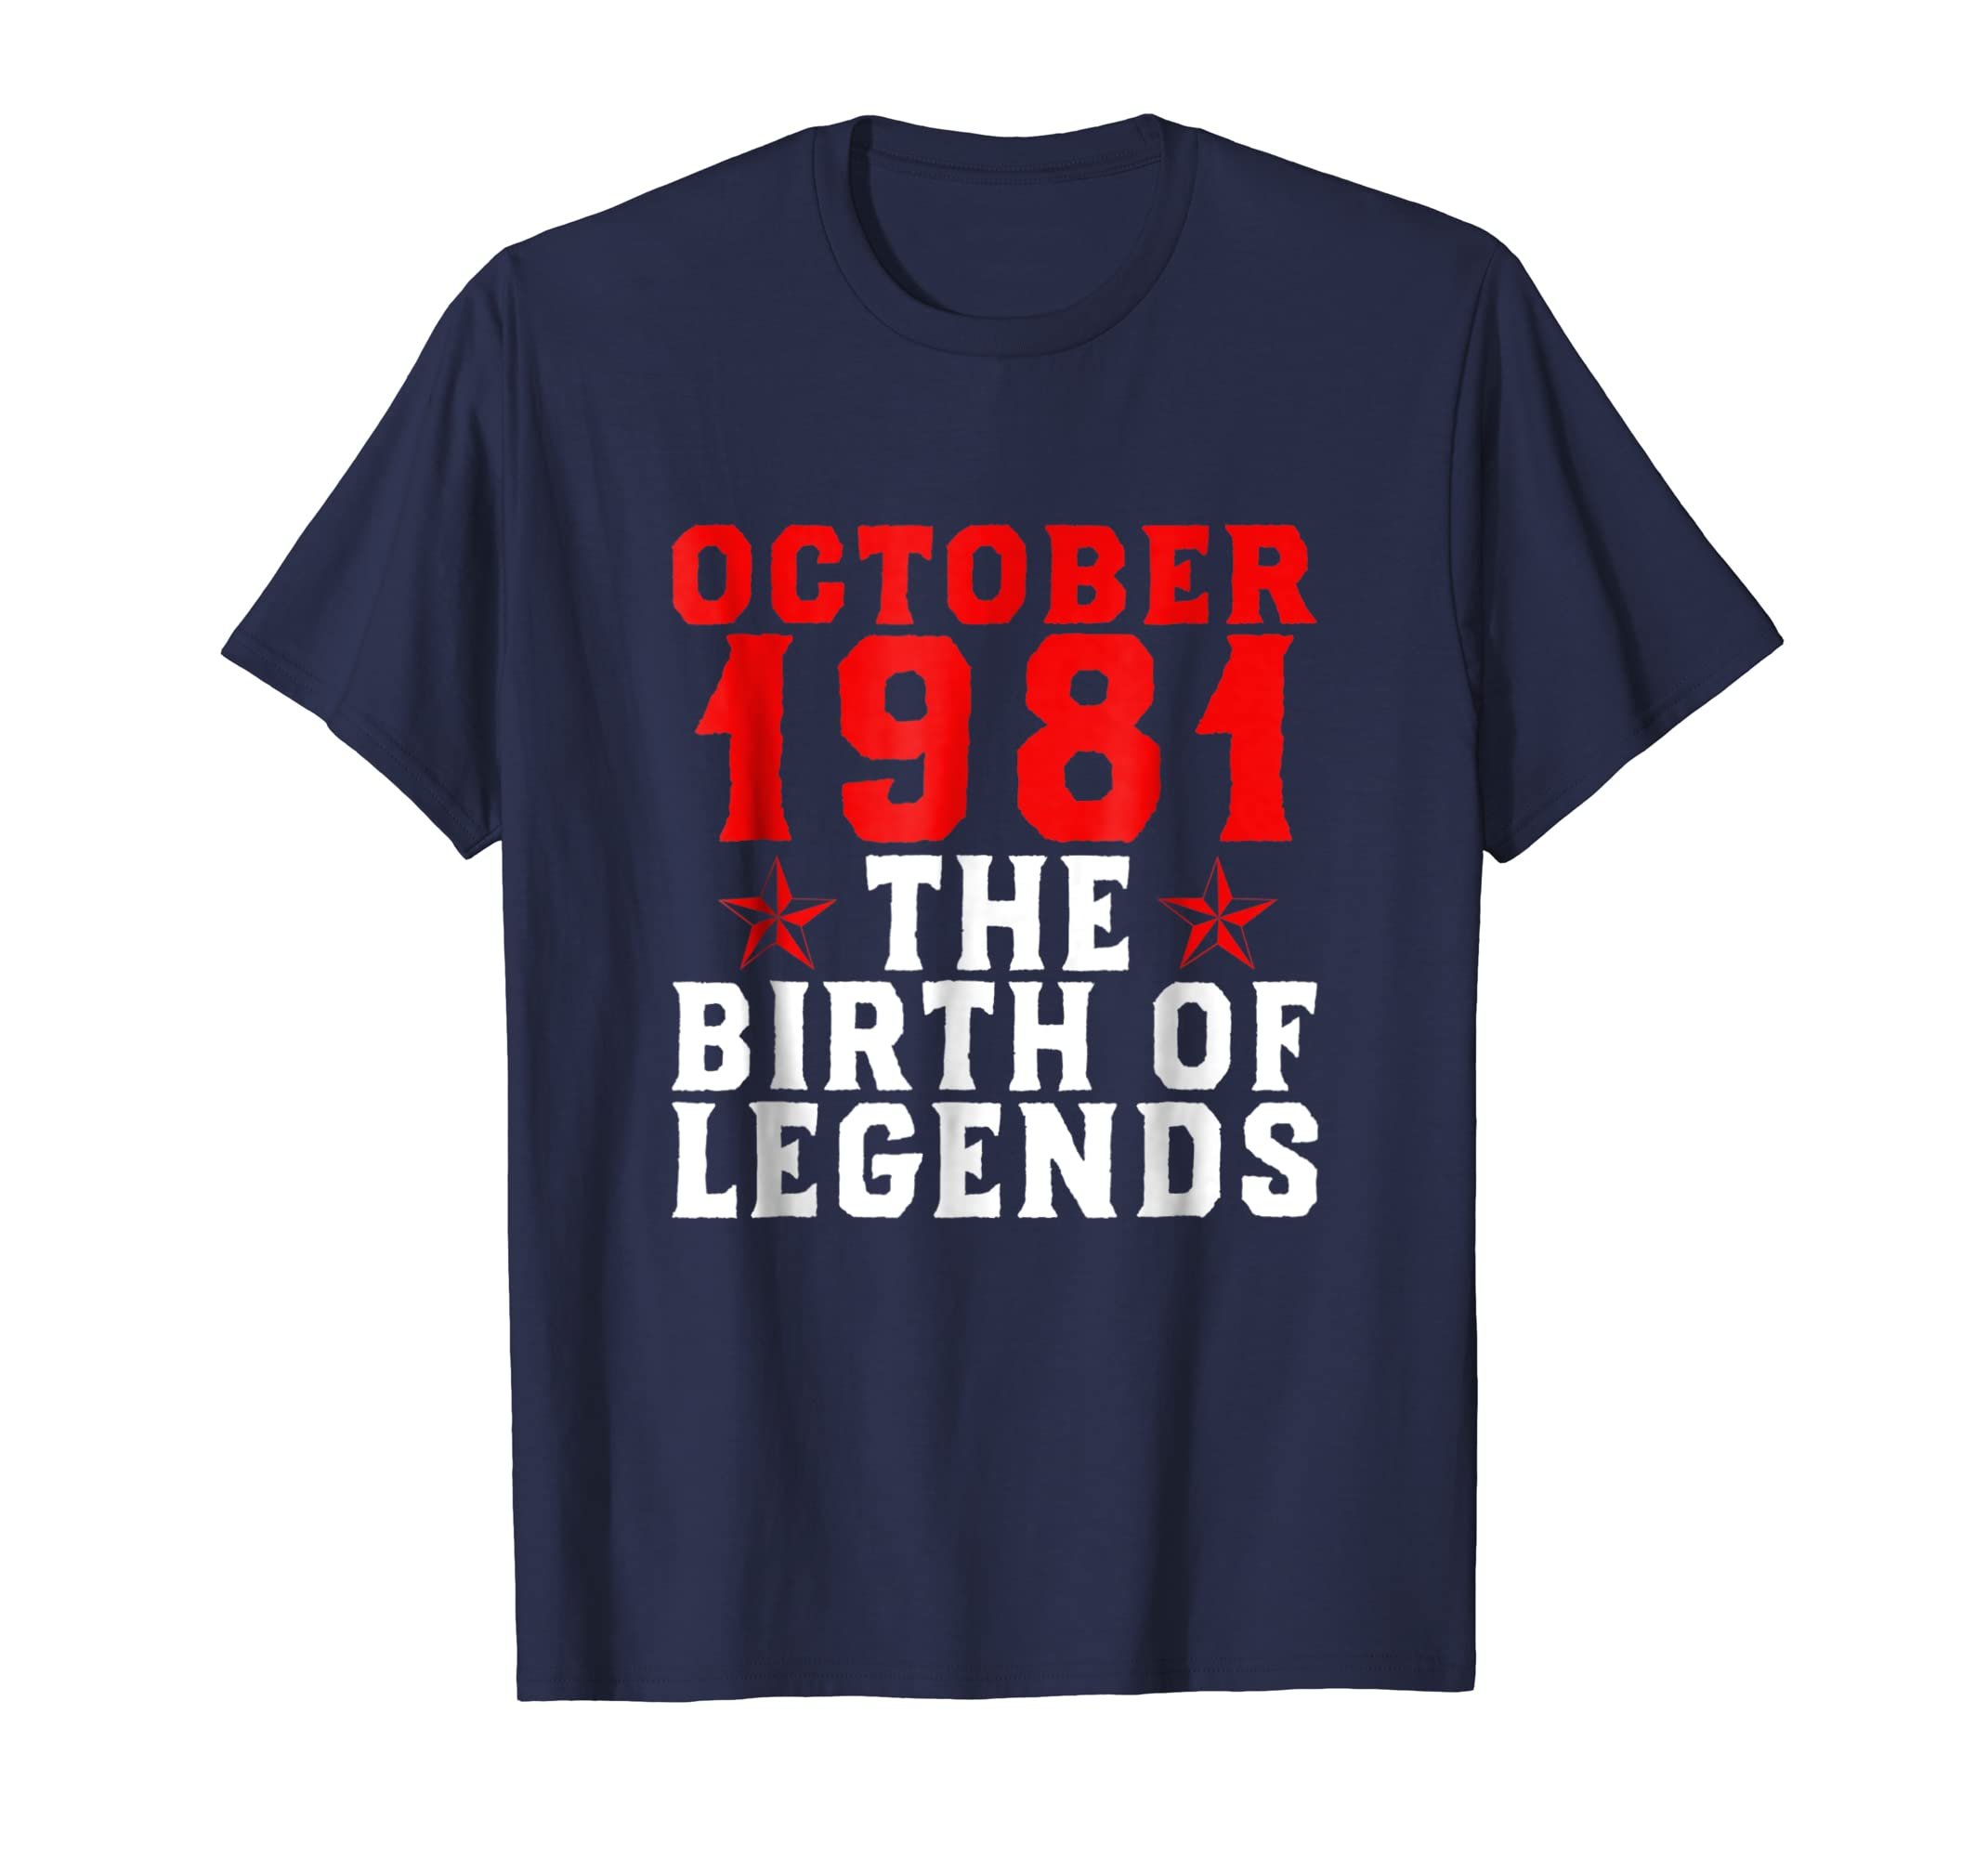 37th Birthday Gift October 1981 Shirt The Birth Of Legends-ln